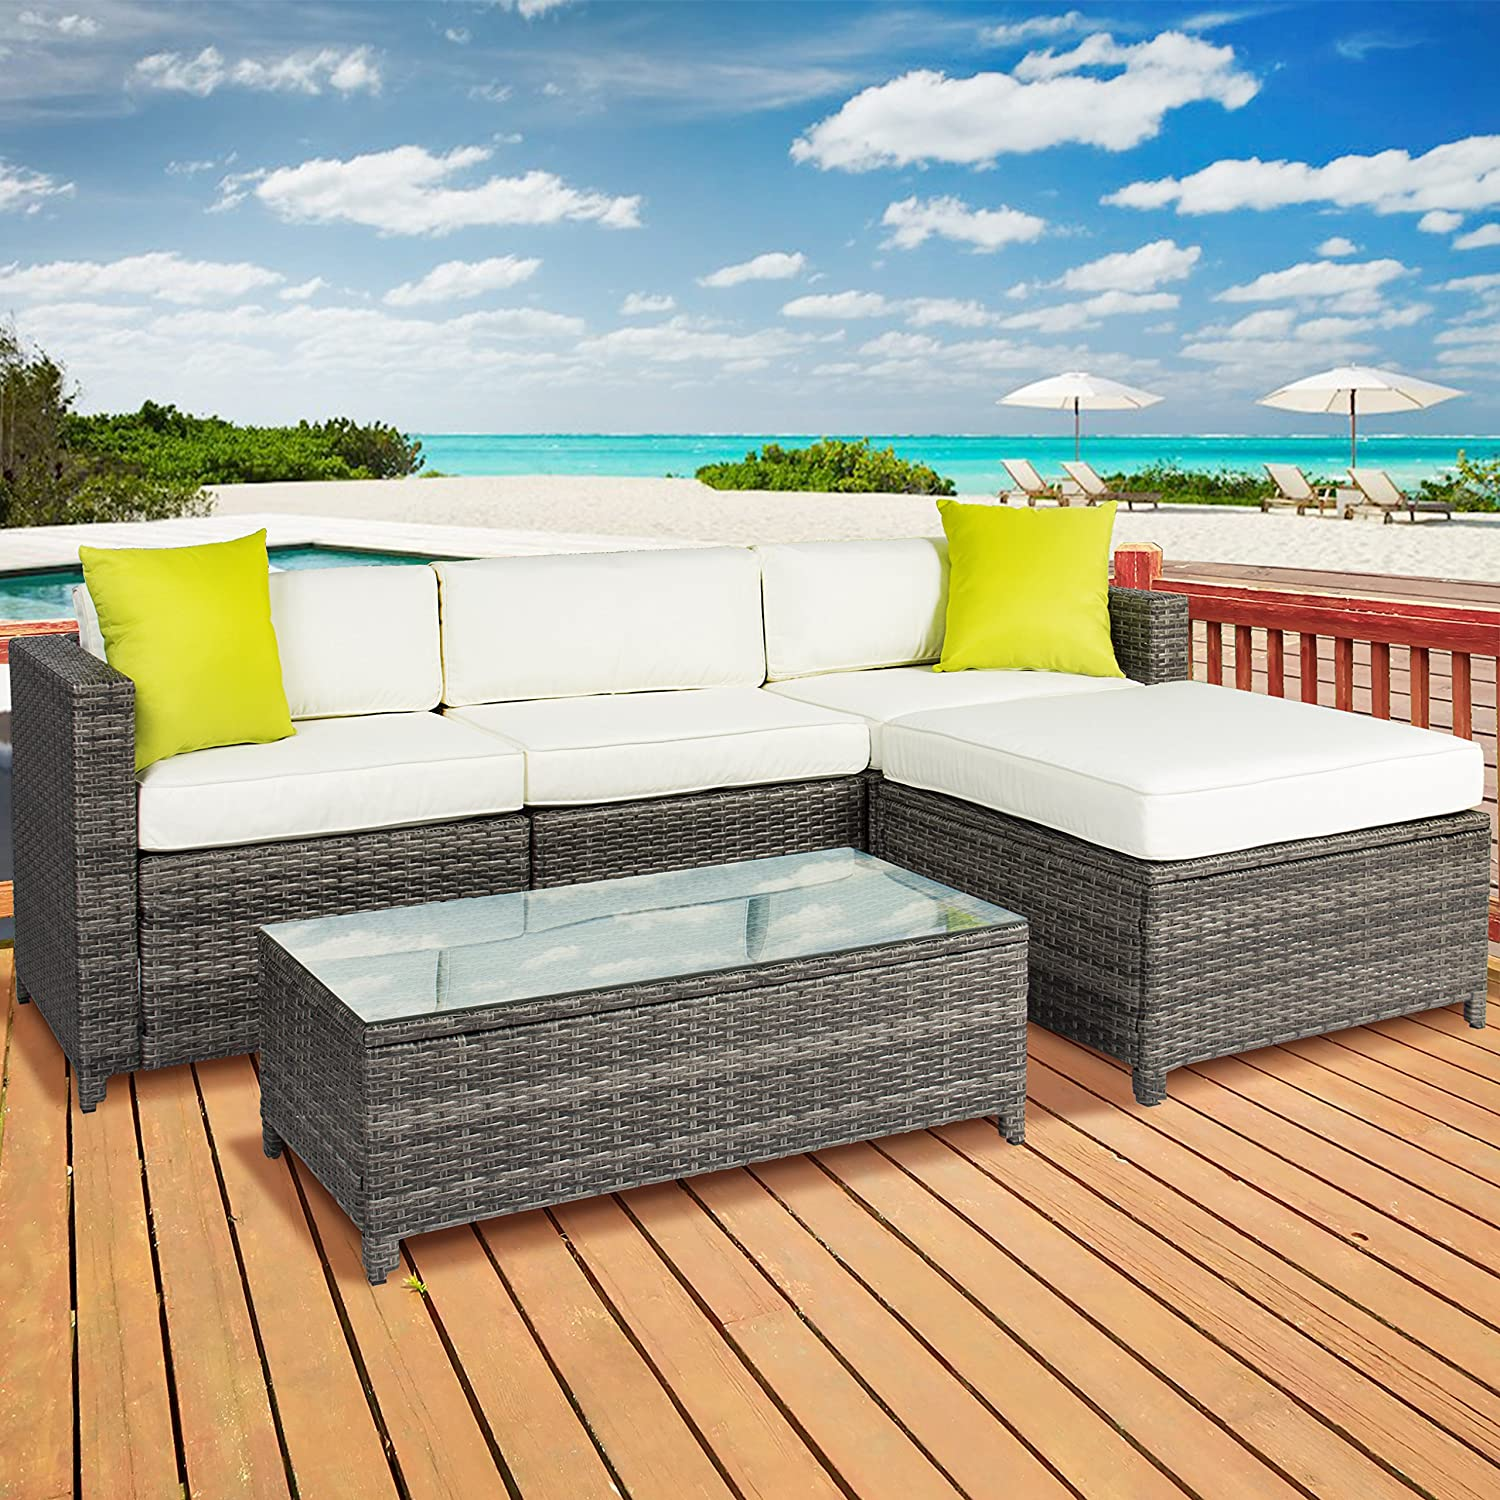 Delightful Amazon.com: Best Choice Products 5PC Rattan Wicker Sofa Set Cushioned  Sectional Outdoor Garden Patio Furniture Grey: Garden U0026 Outdoor